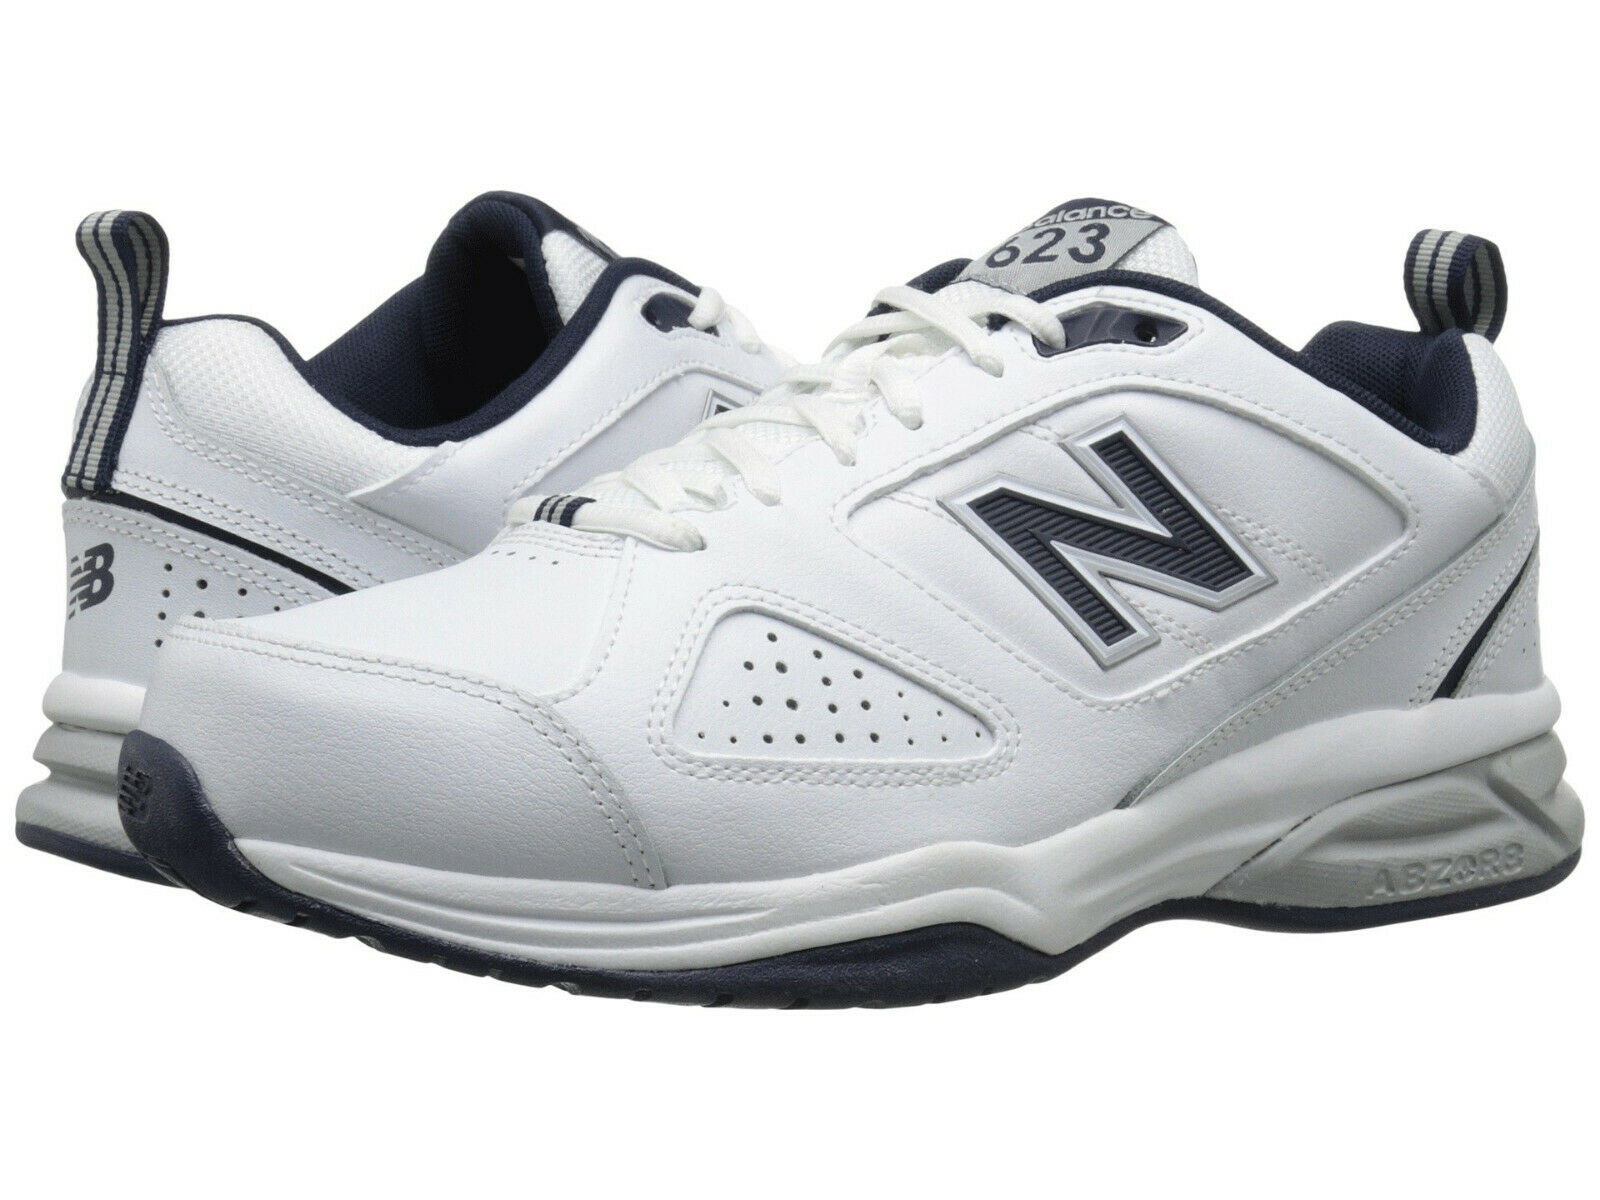 Men New Balance MX623WN3 Walking shoes Extra Wide 4E White Navy Leather Original